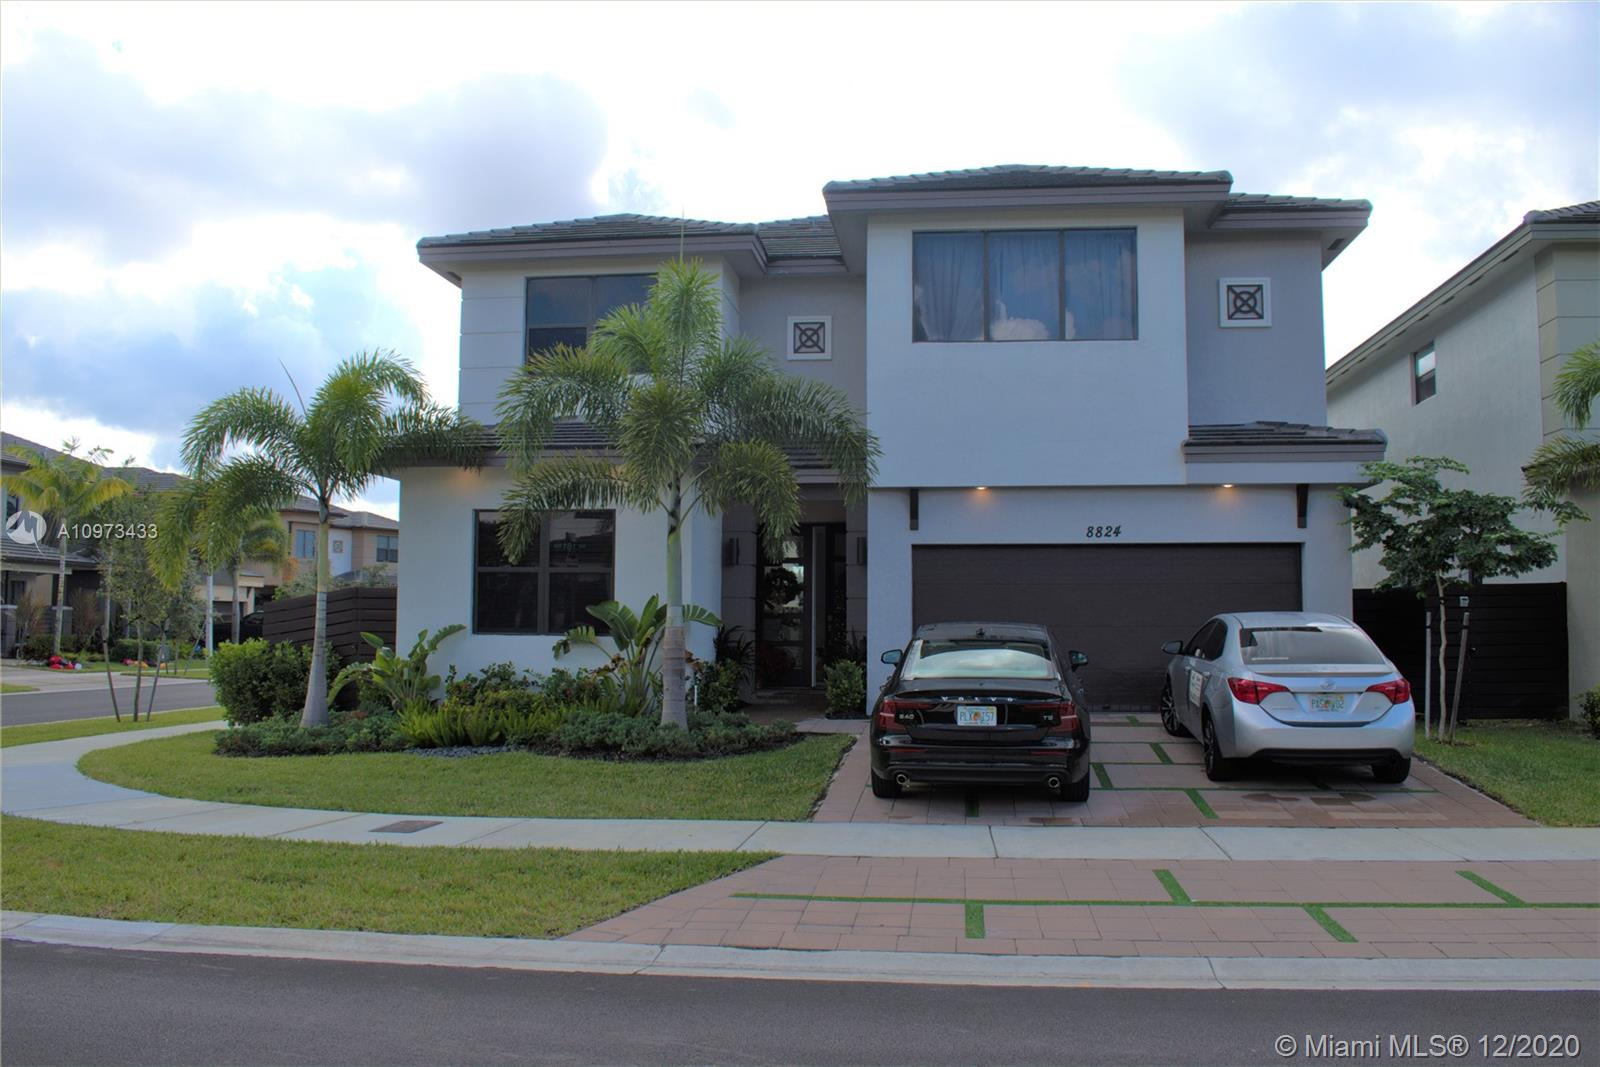 Details for 8824 161th Ter, Miami Lakes, FL 33018